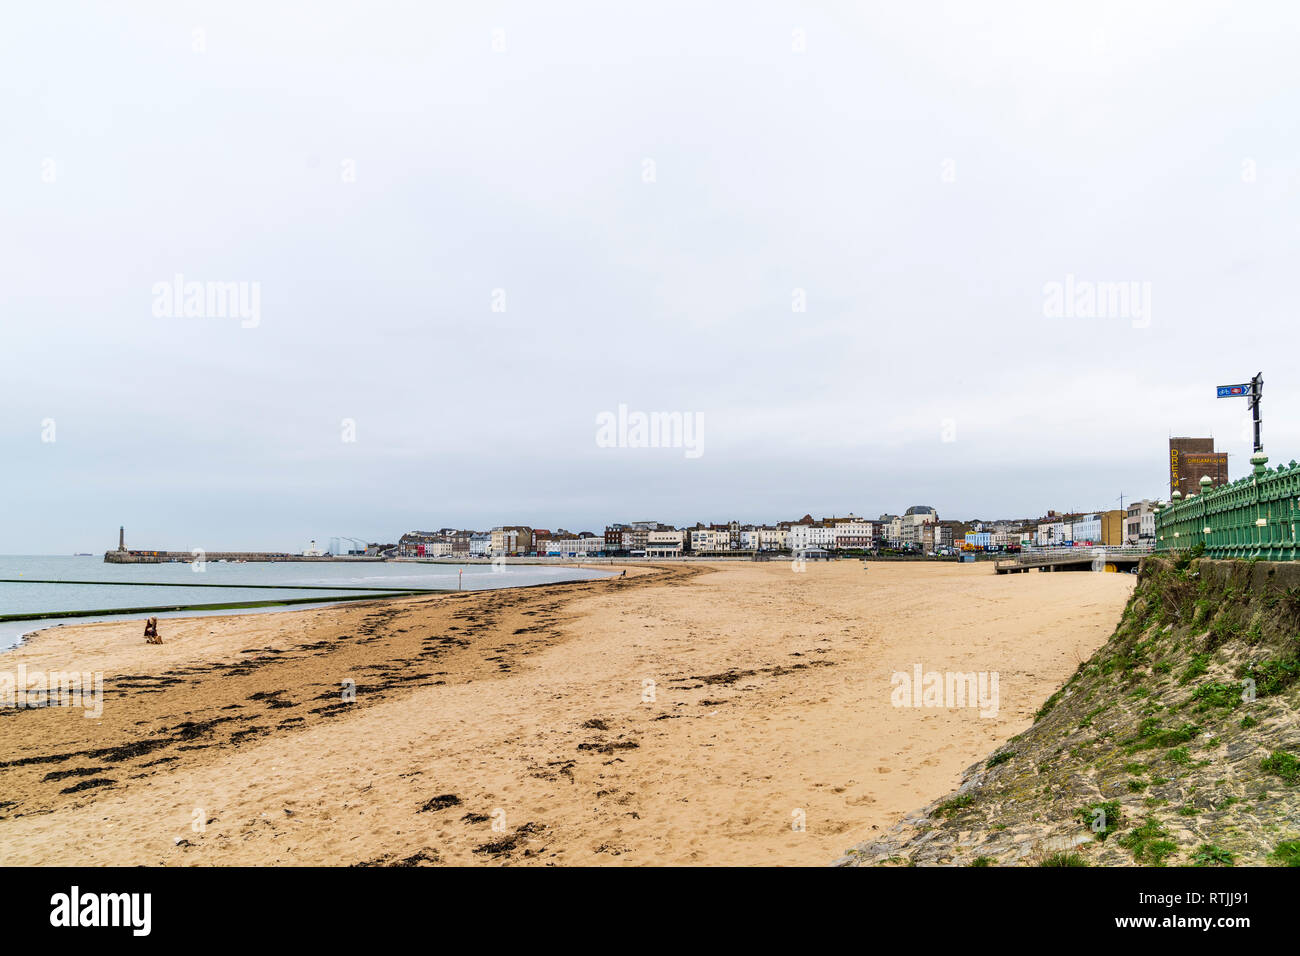 Landscape of Margate seafront with the main sands, harbour, Turner Center art gallery and seafront buildings including Dreamland. Grey overcast sky. - Stock Image